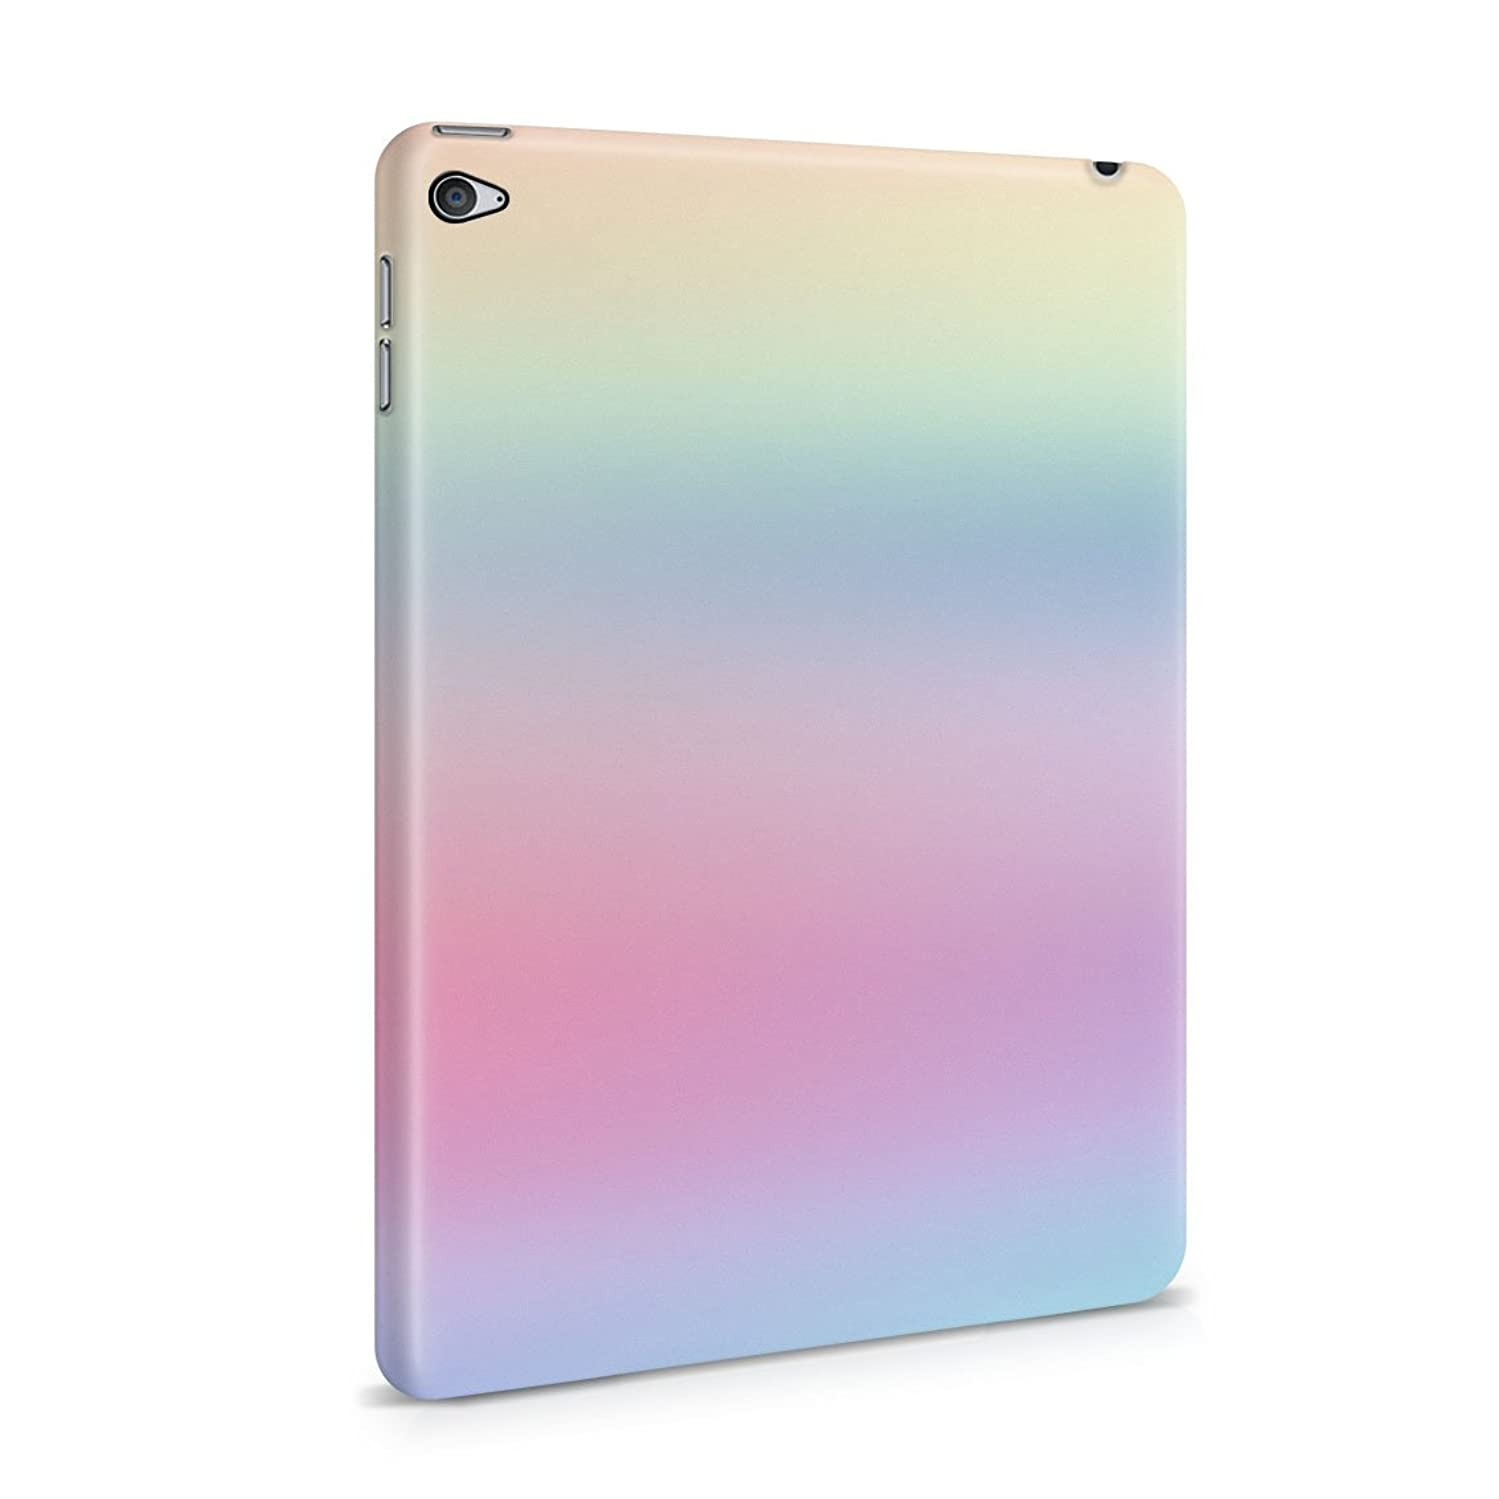 Trippy Rainbow Color Spectrum Plastic Tablet Snap On Back Cover Shell For iPad Mini 4